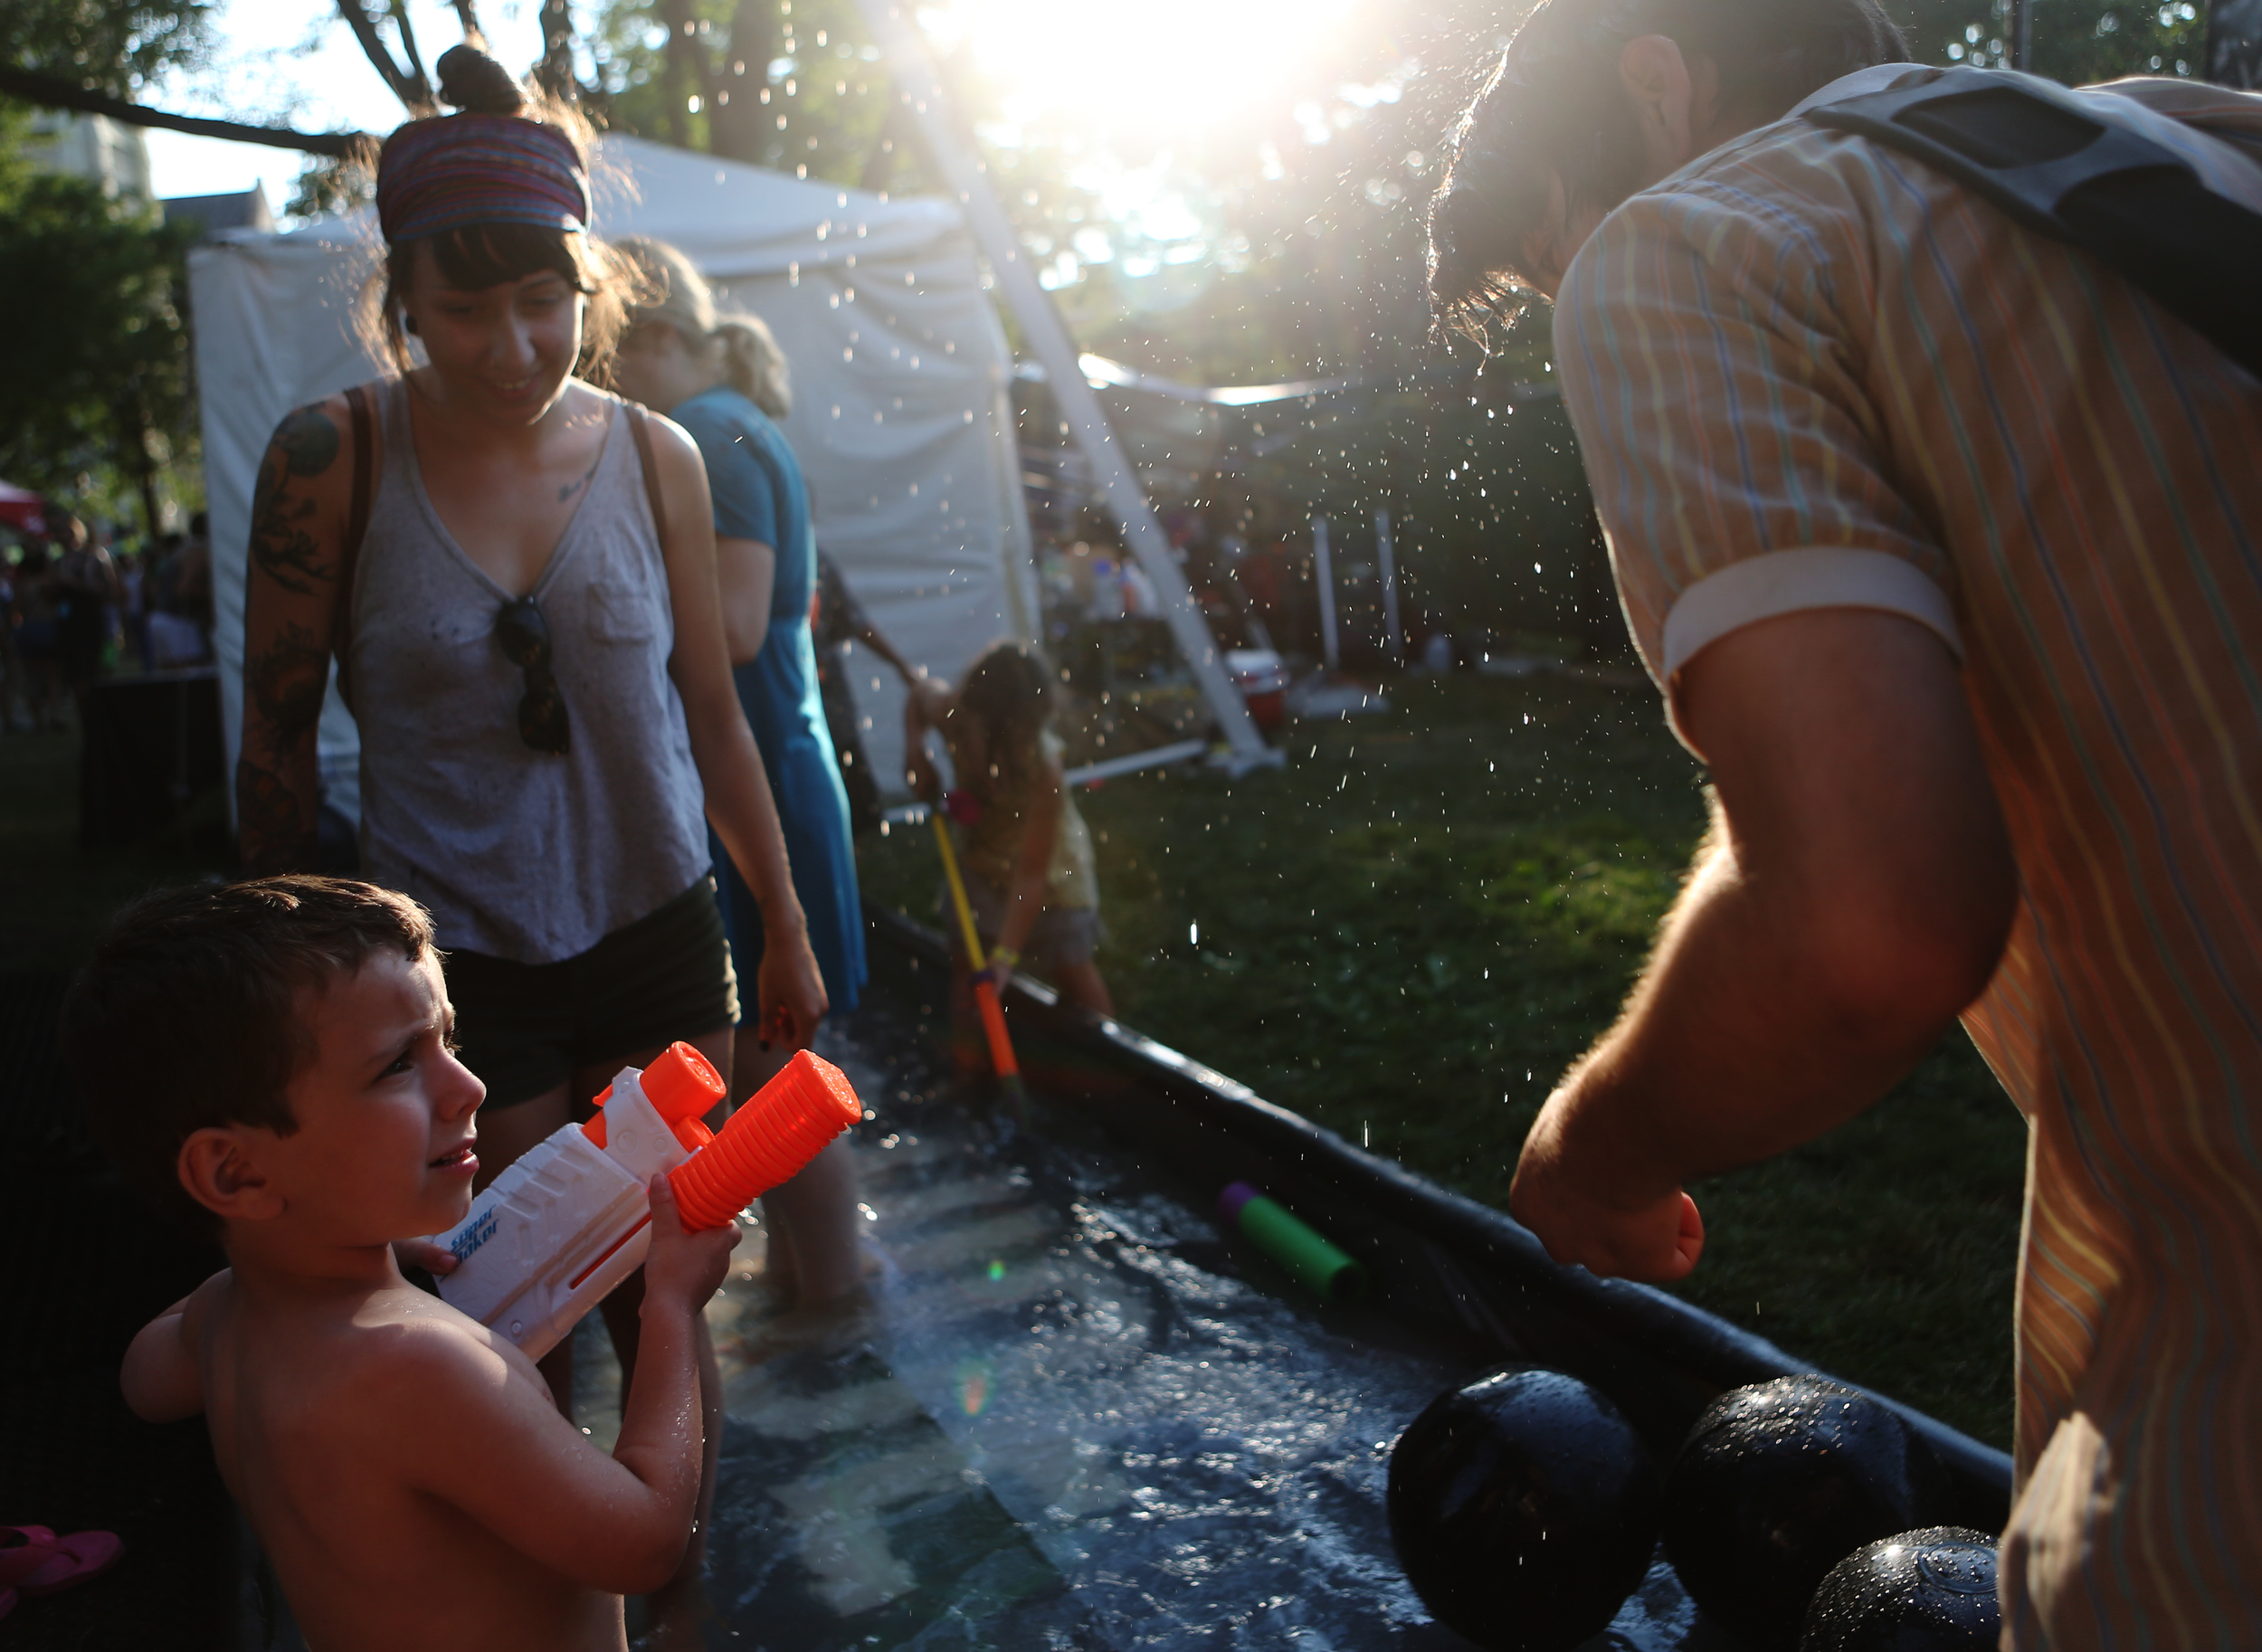 """Oliver Dennison, 5, aims his water gun at Steven McDonough at the Pitchfork Music Festival in Chicago's Union Park on Saturday, July 20, 2013. Oliver was hesitant, because he said, """"My parents told me not to spray people in the face."""""""